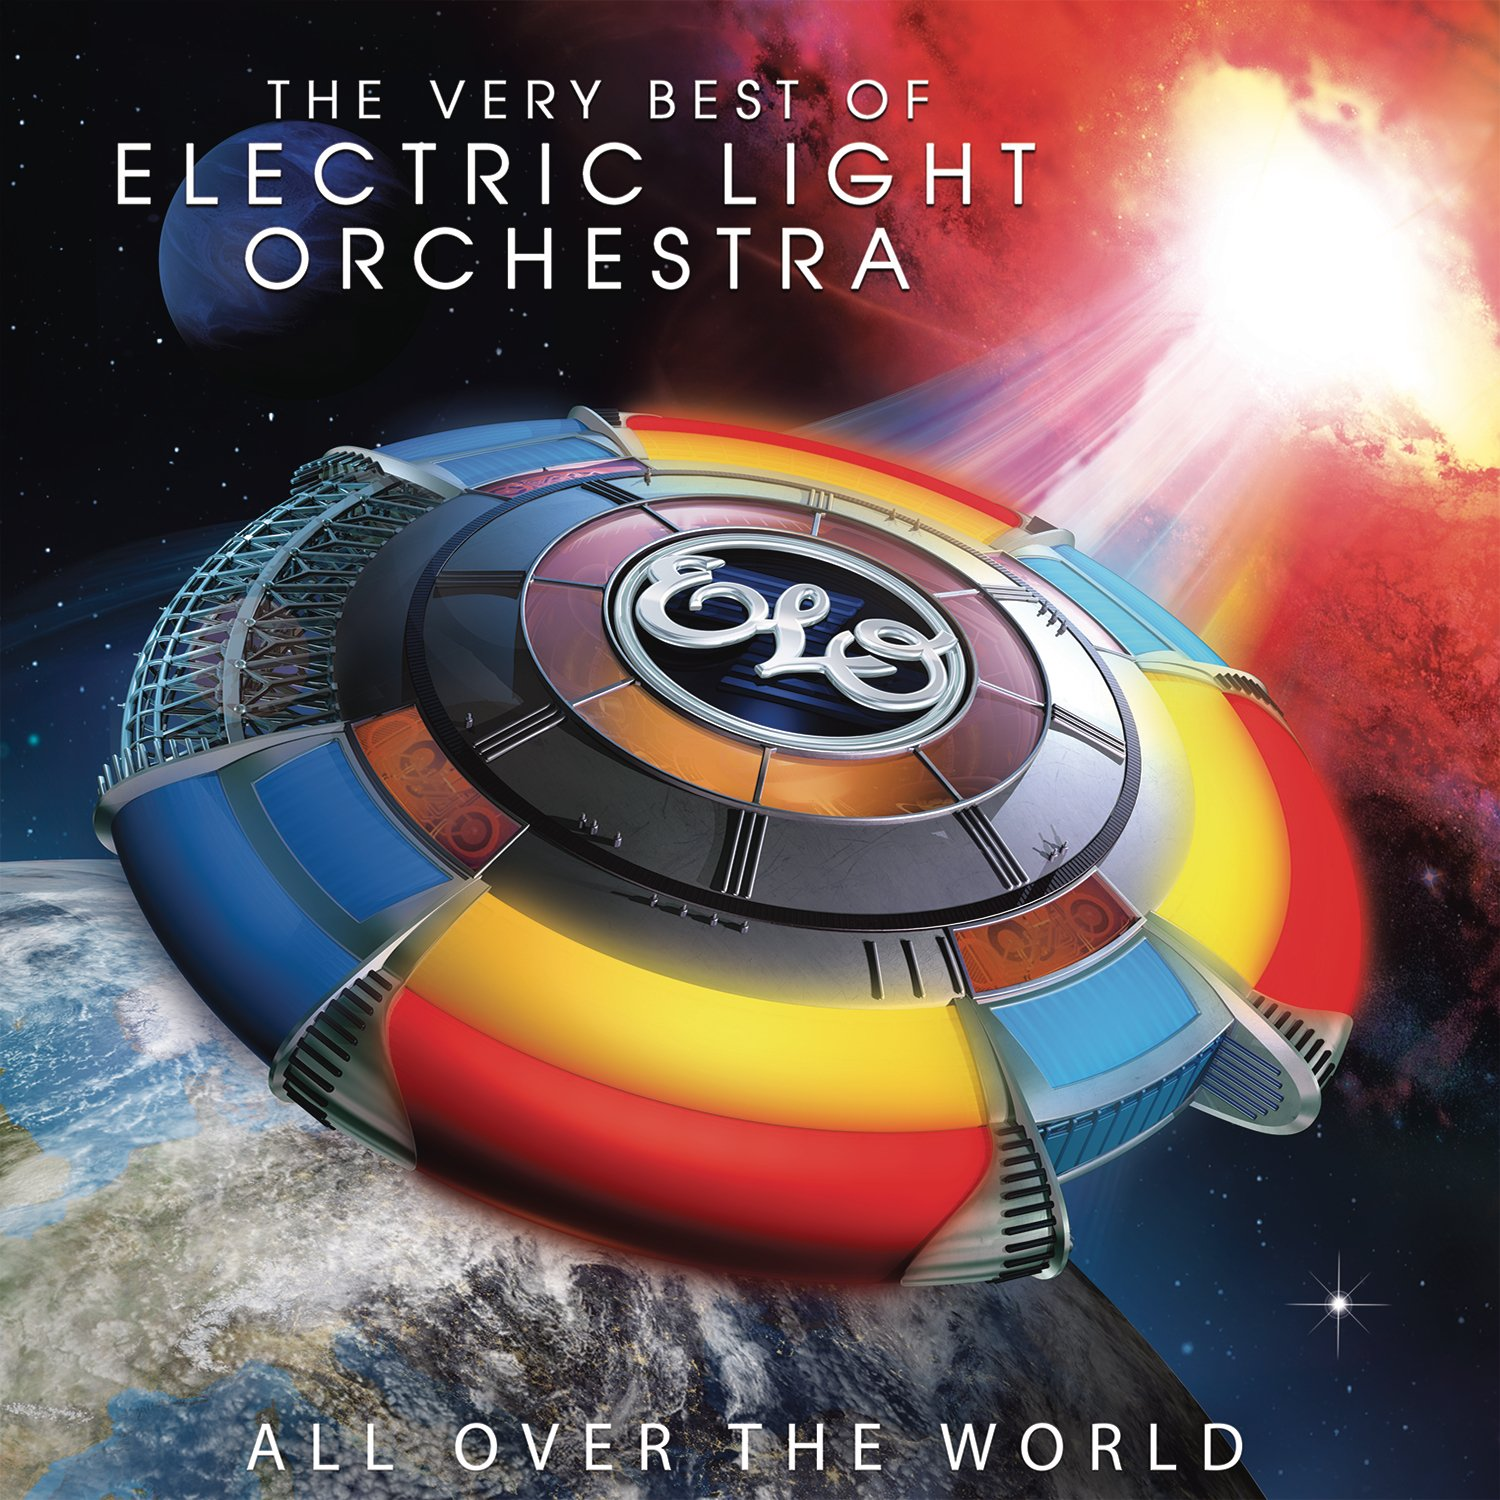 Vinilo : ELO - All Over The World: The Very Best Of Electric Light Orchestra (Gatefold LP Jacket, 2 Disc)